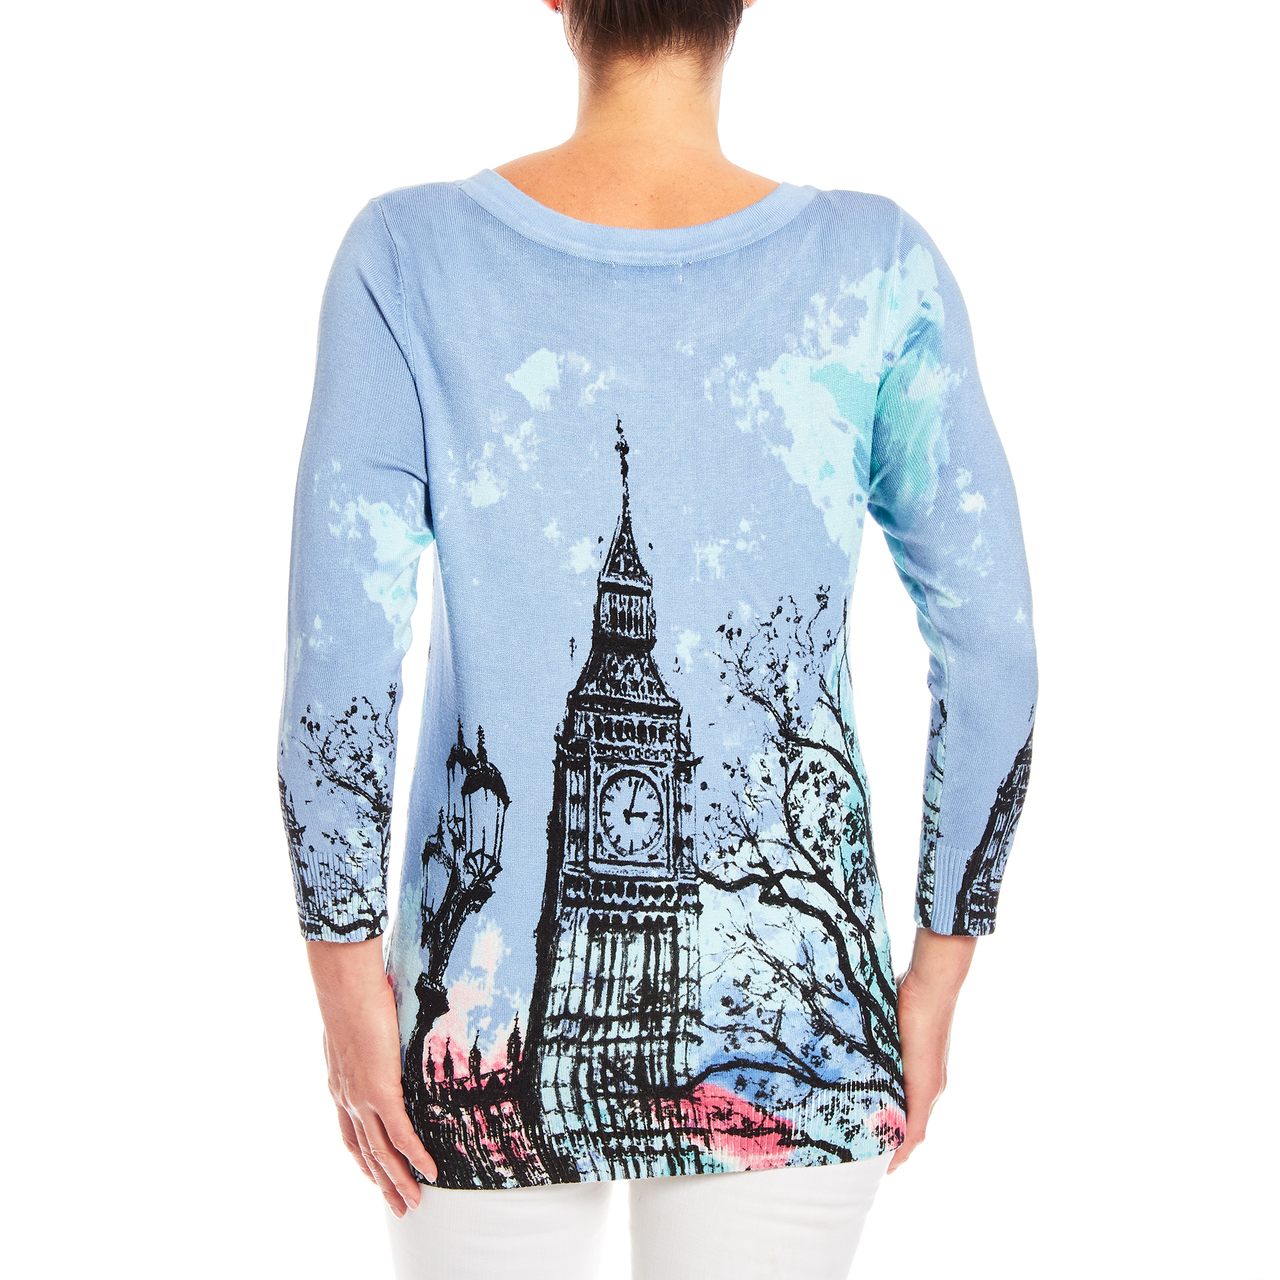 London Scene 3/4 Sleeve Printed Sweater